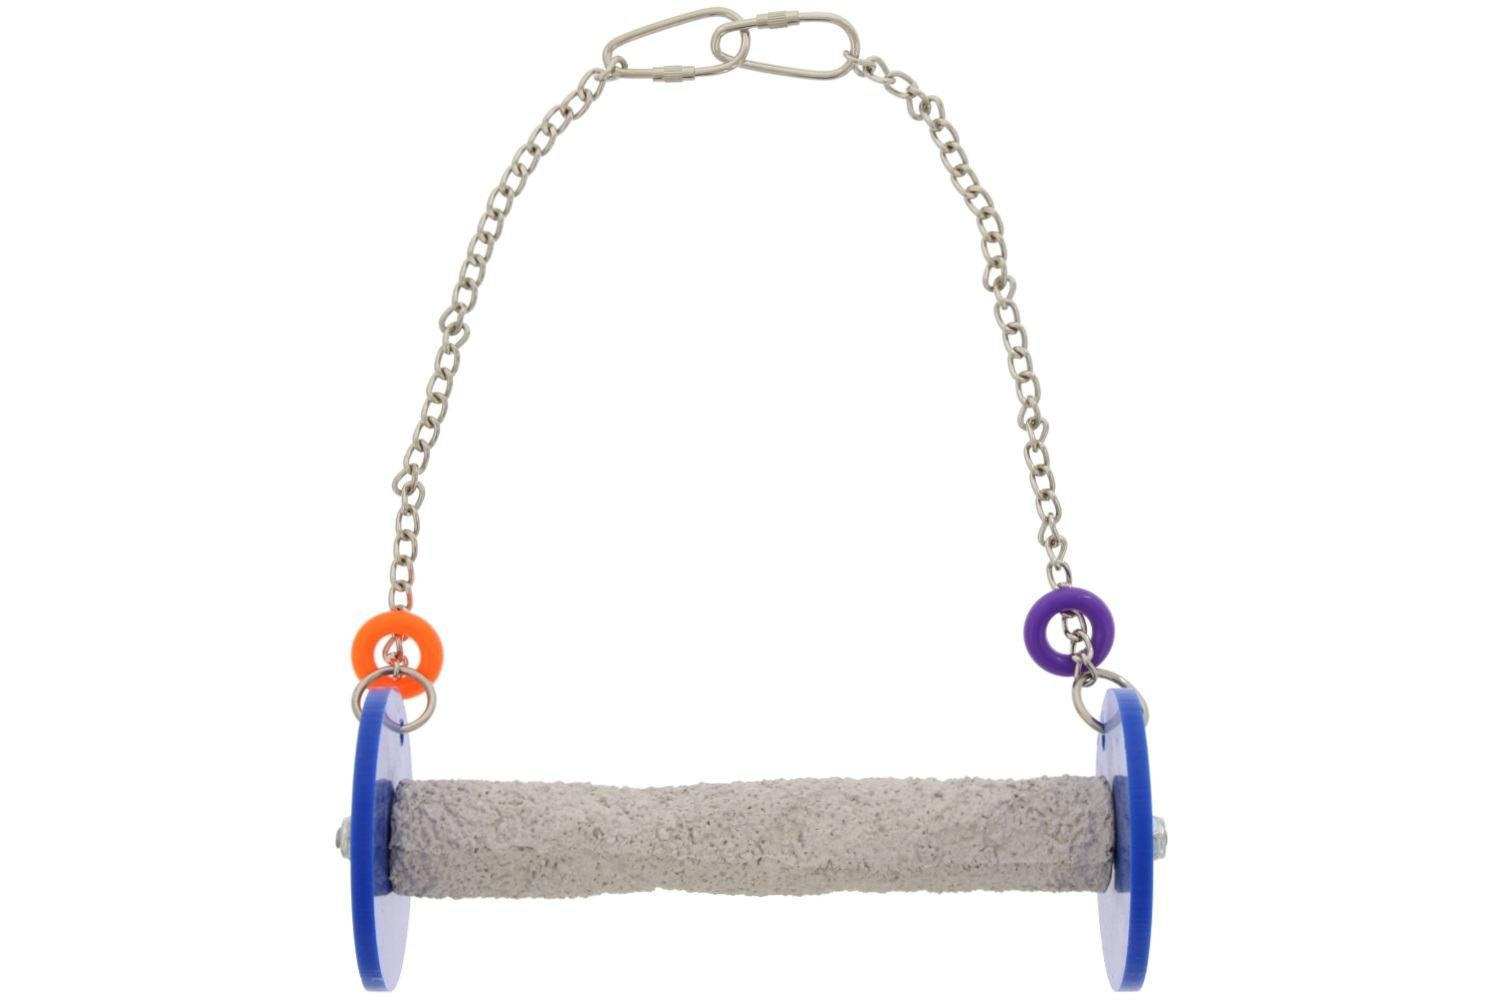 Sweet Feet and Beak Roll Swing and Perch for Birds, Keeps Nails and Beak in Top Condition and Stimulate Leg Muscles - Safe and Non-Toxic, for Cages by Sweet Feet and Beak (Image #1)